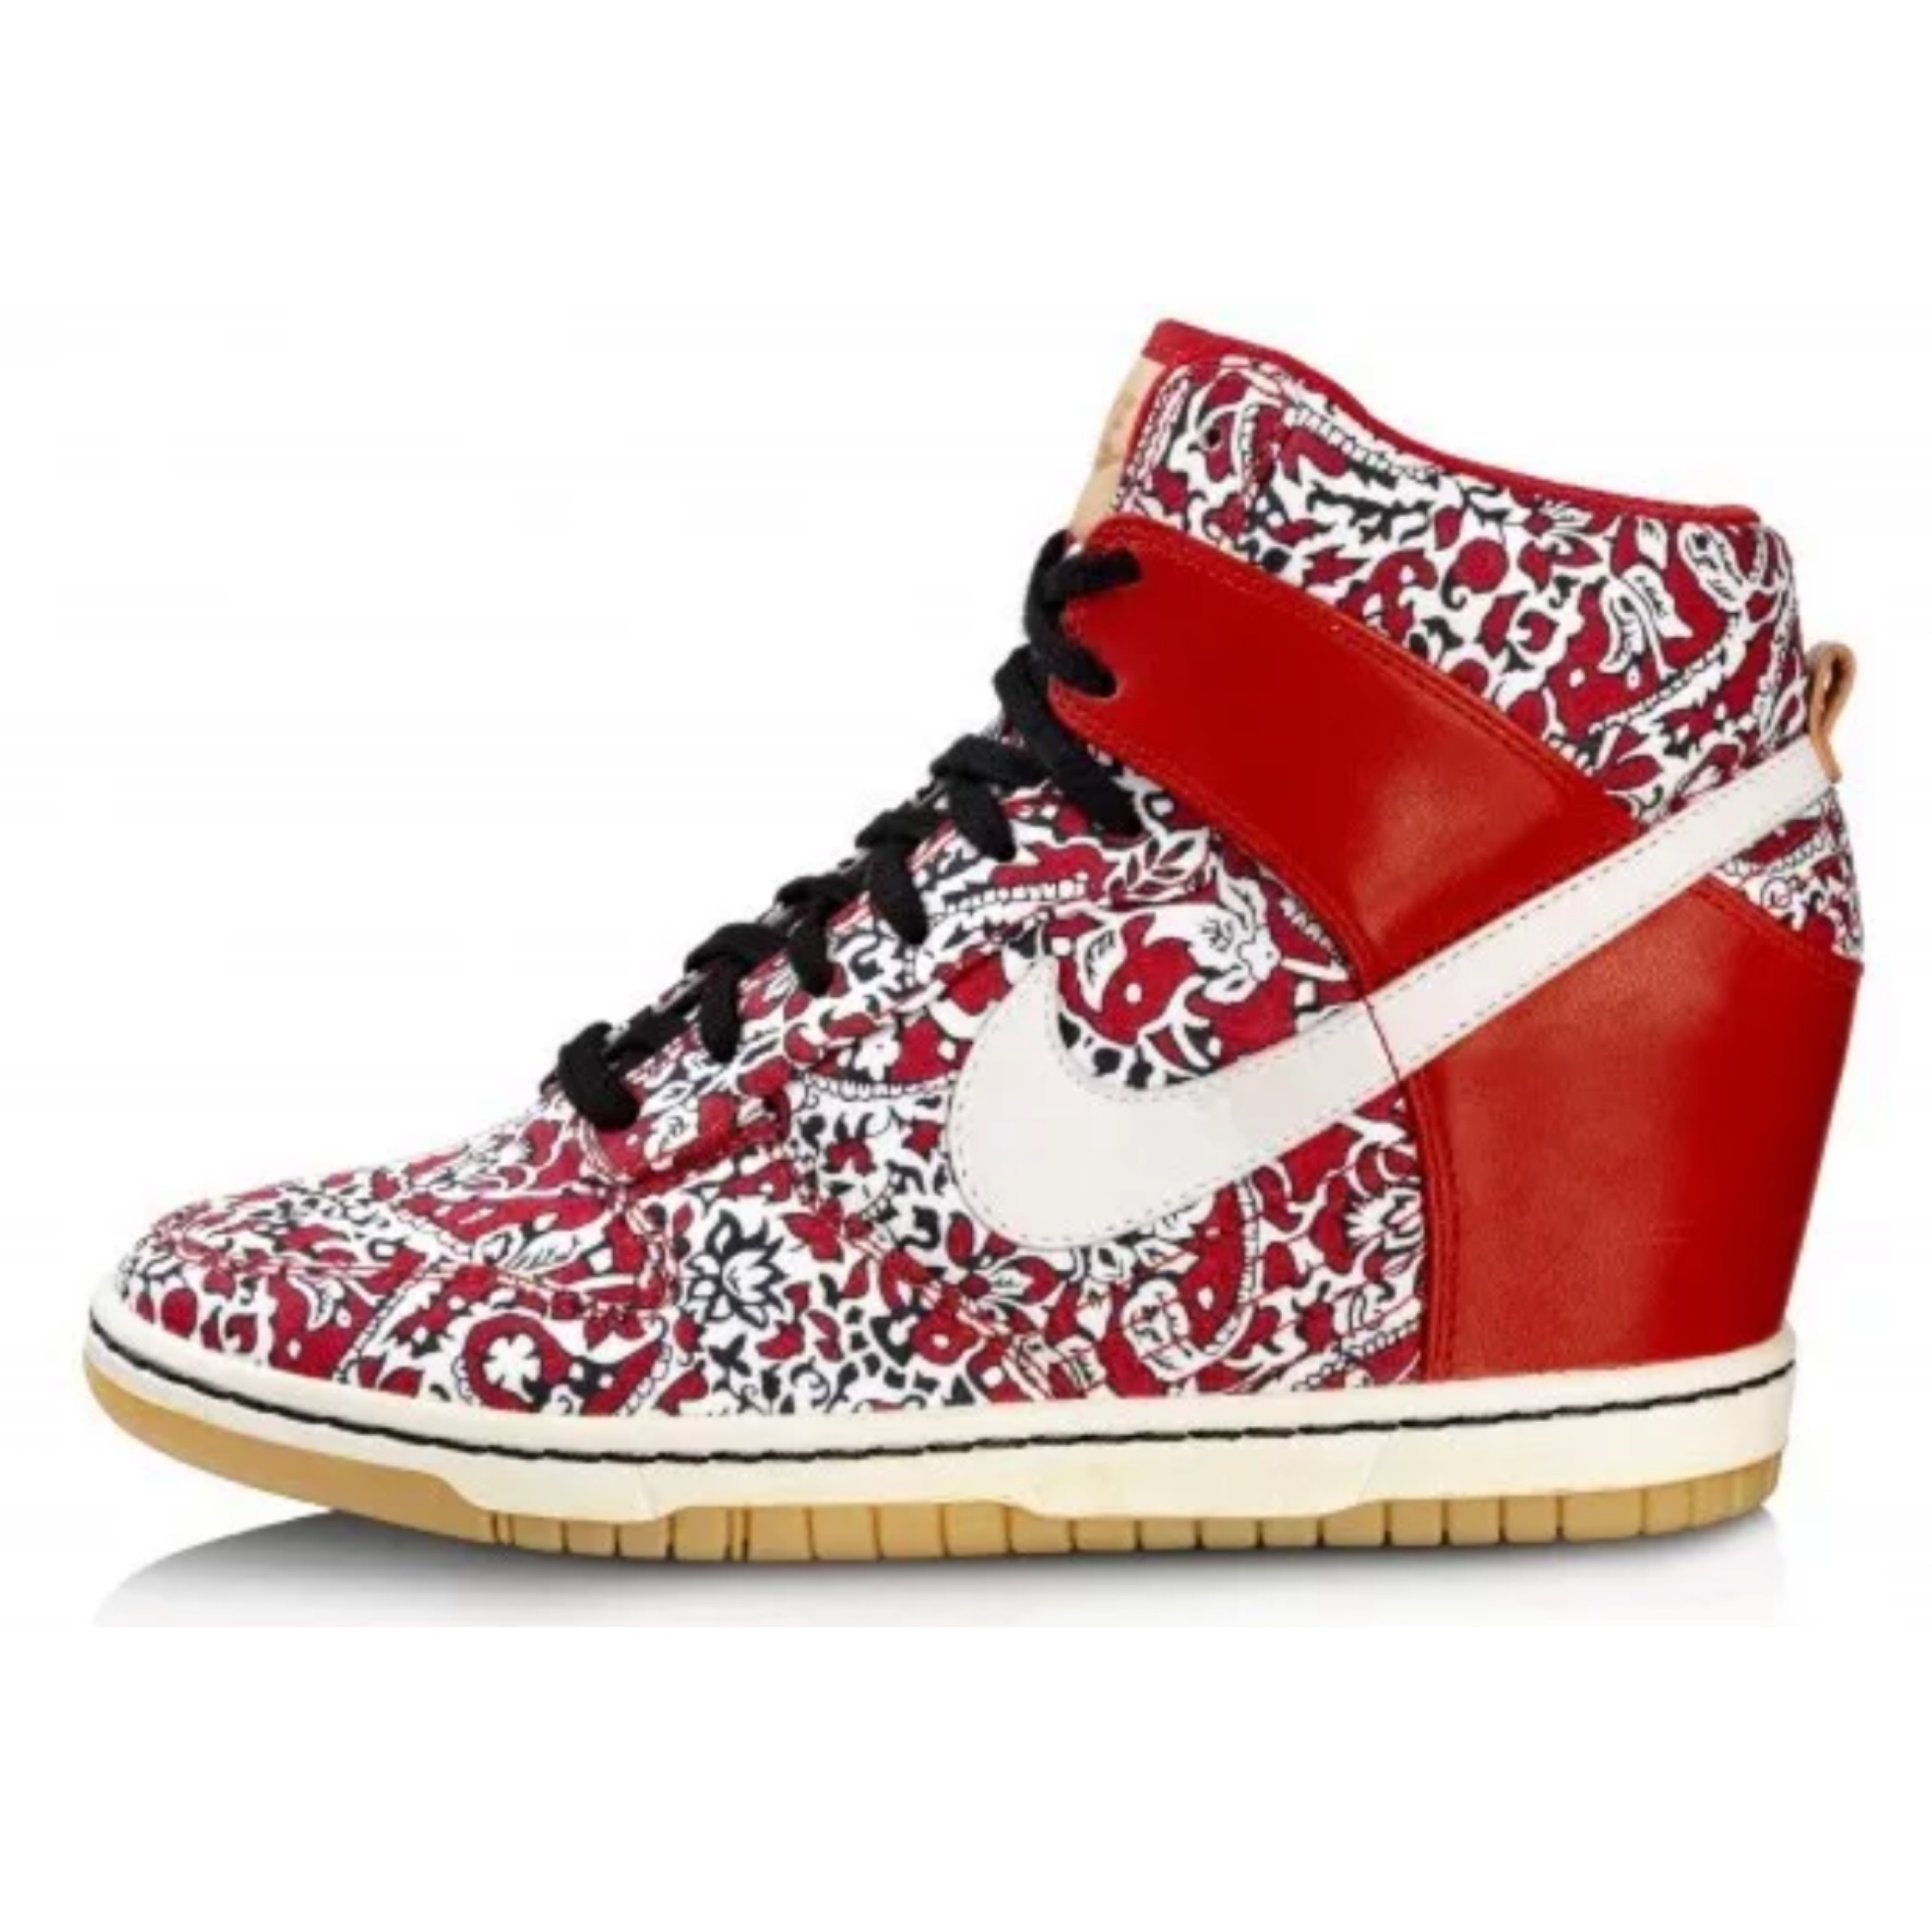 online store 62f64 87342 Nike Liberty Of London Dunk Sky High